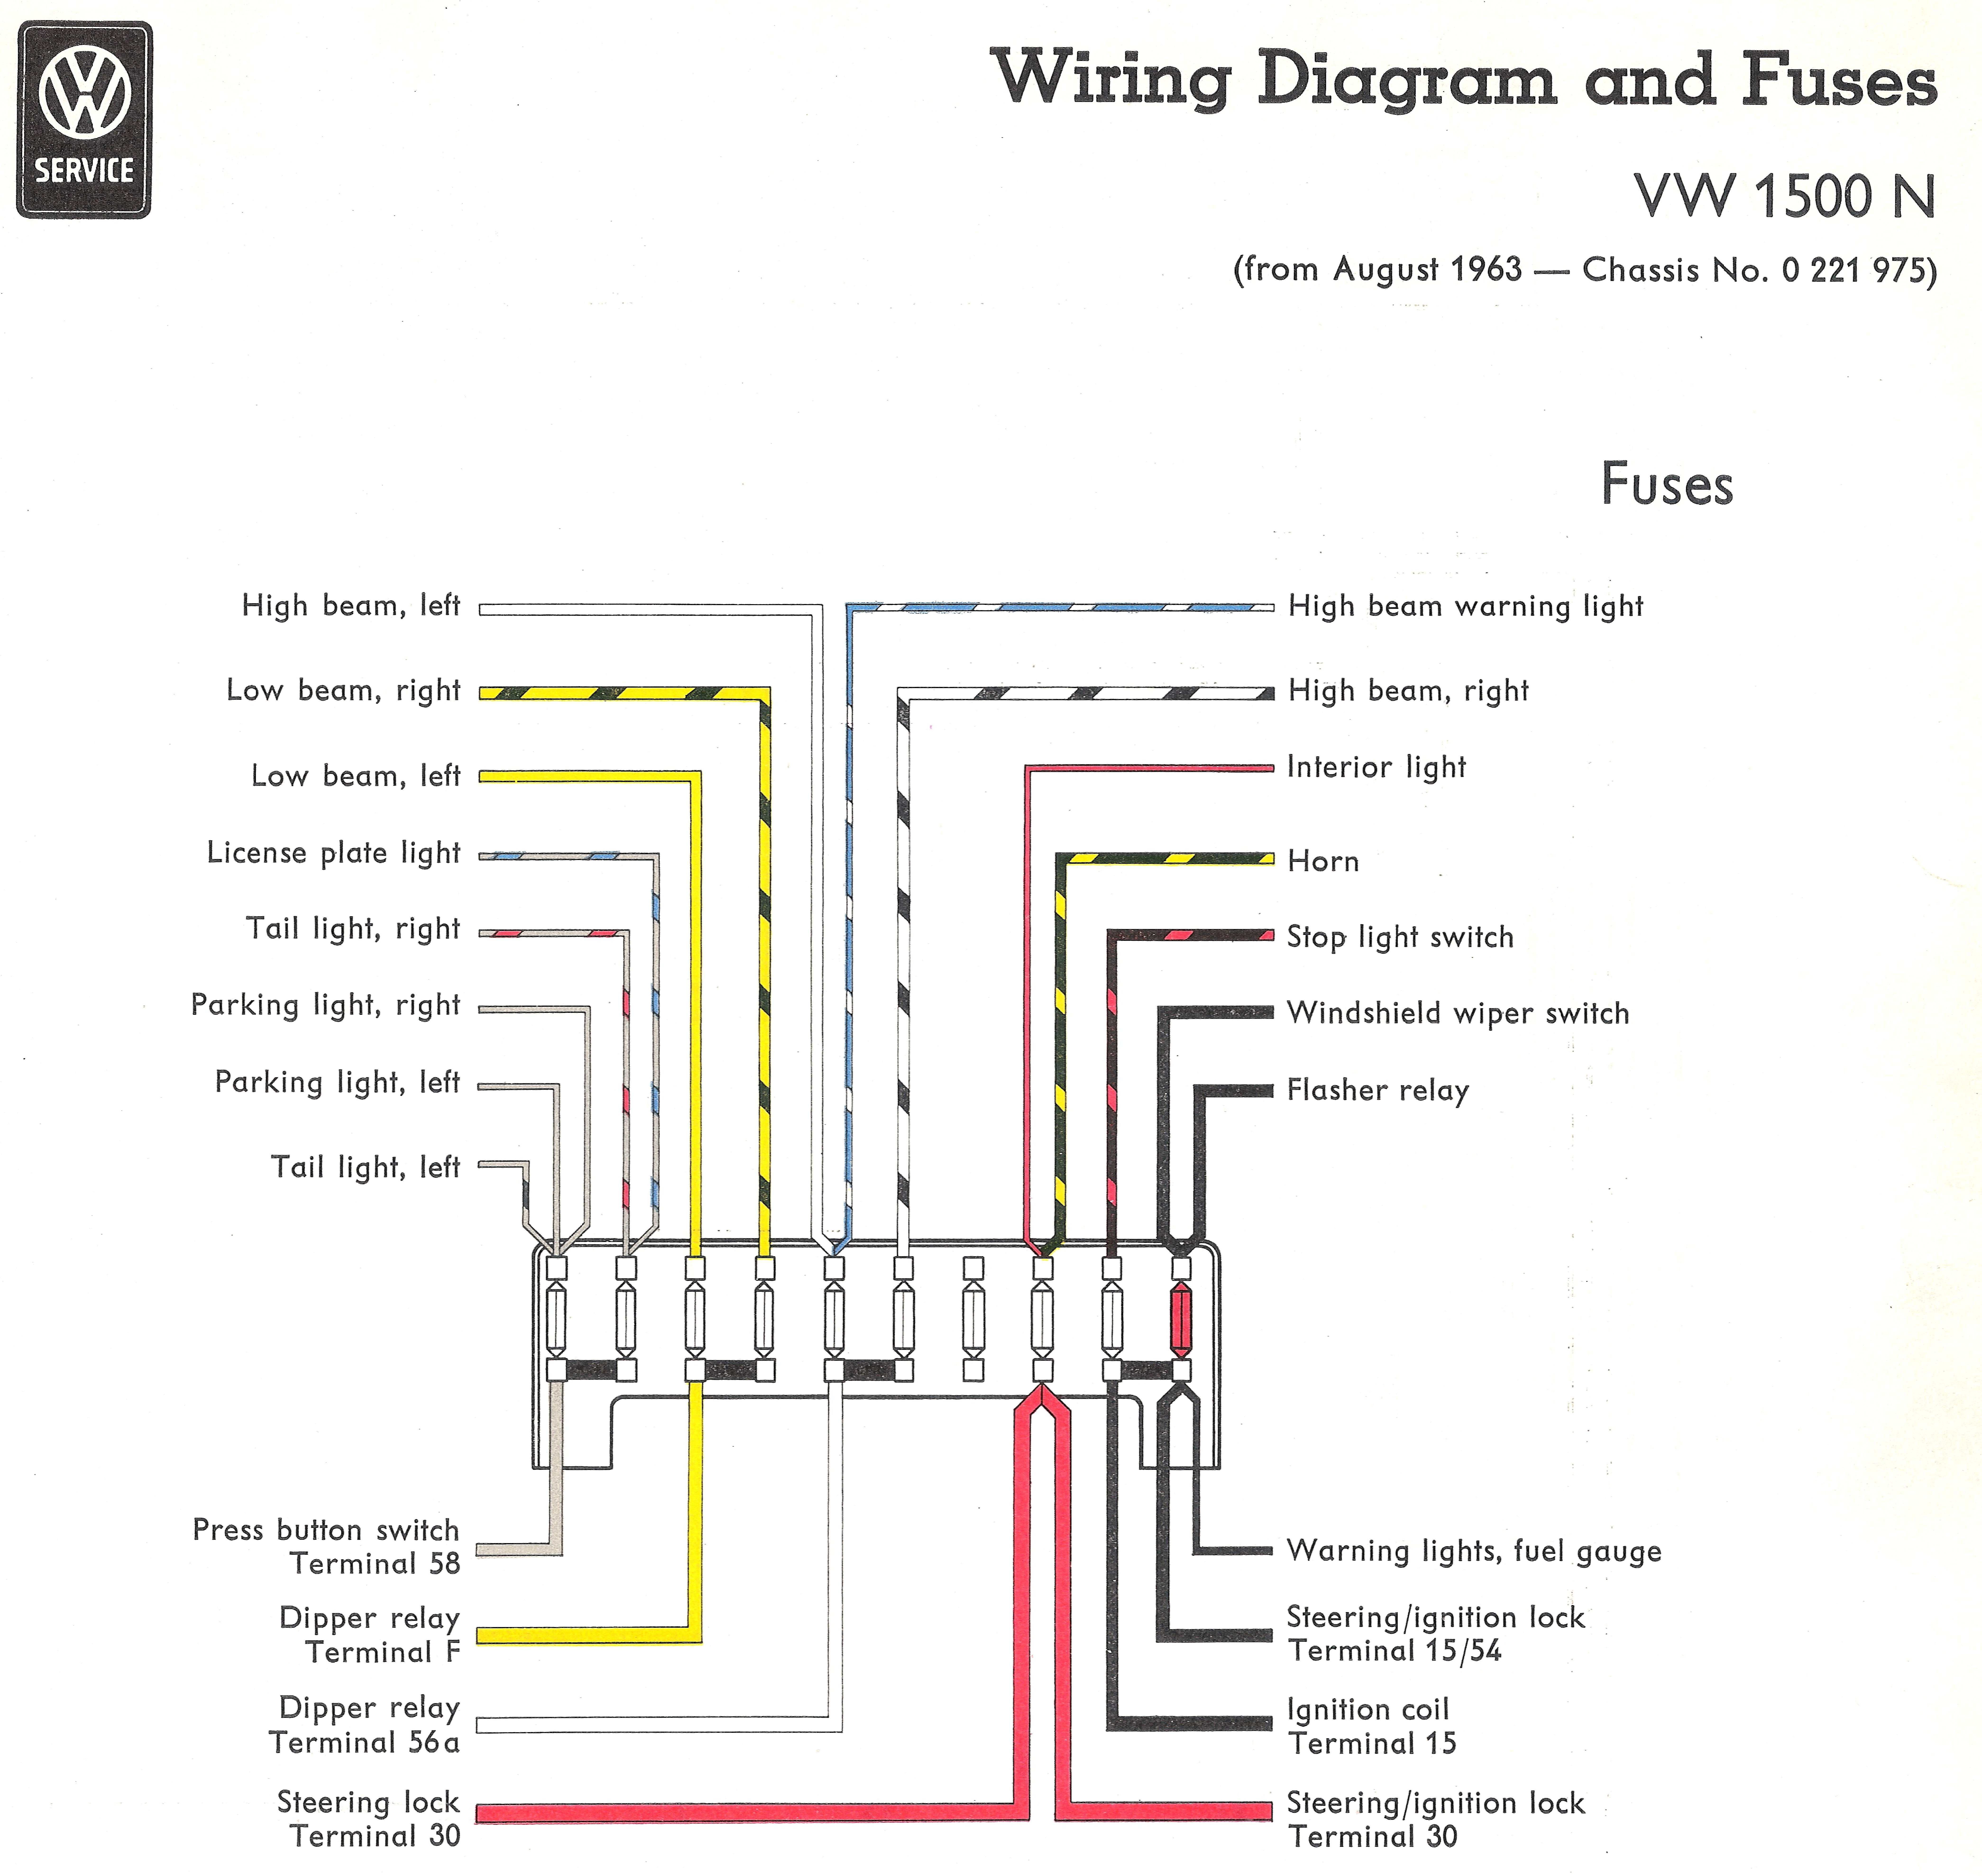 type3_1500n fuse 1200dpi thesamba com type 3 wiring diagrams fuse panel wiring diagram at bakdesigns.co